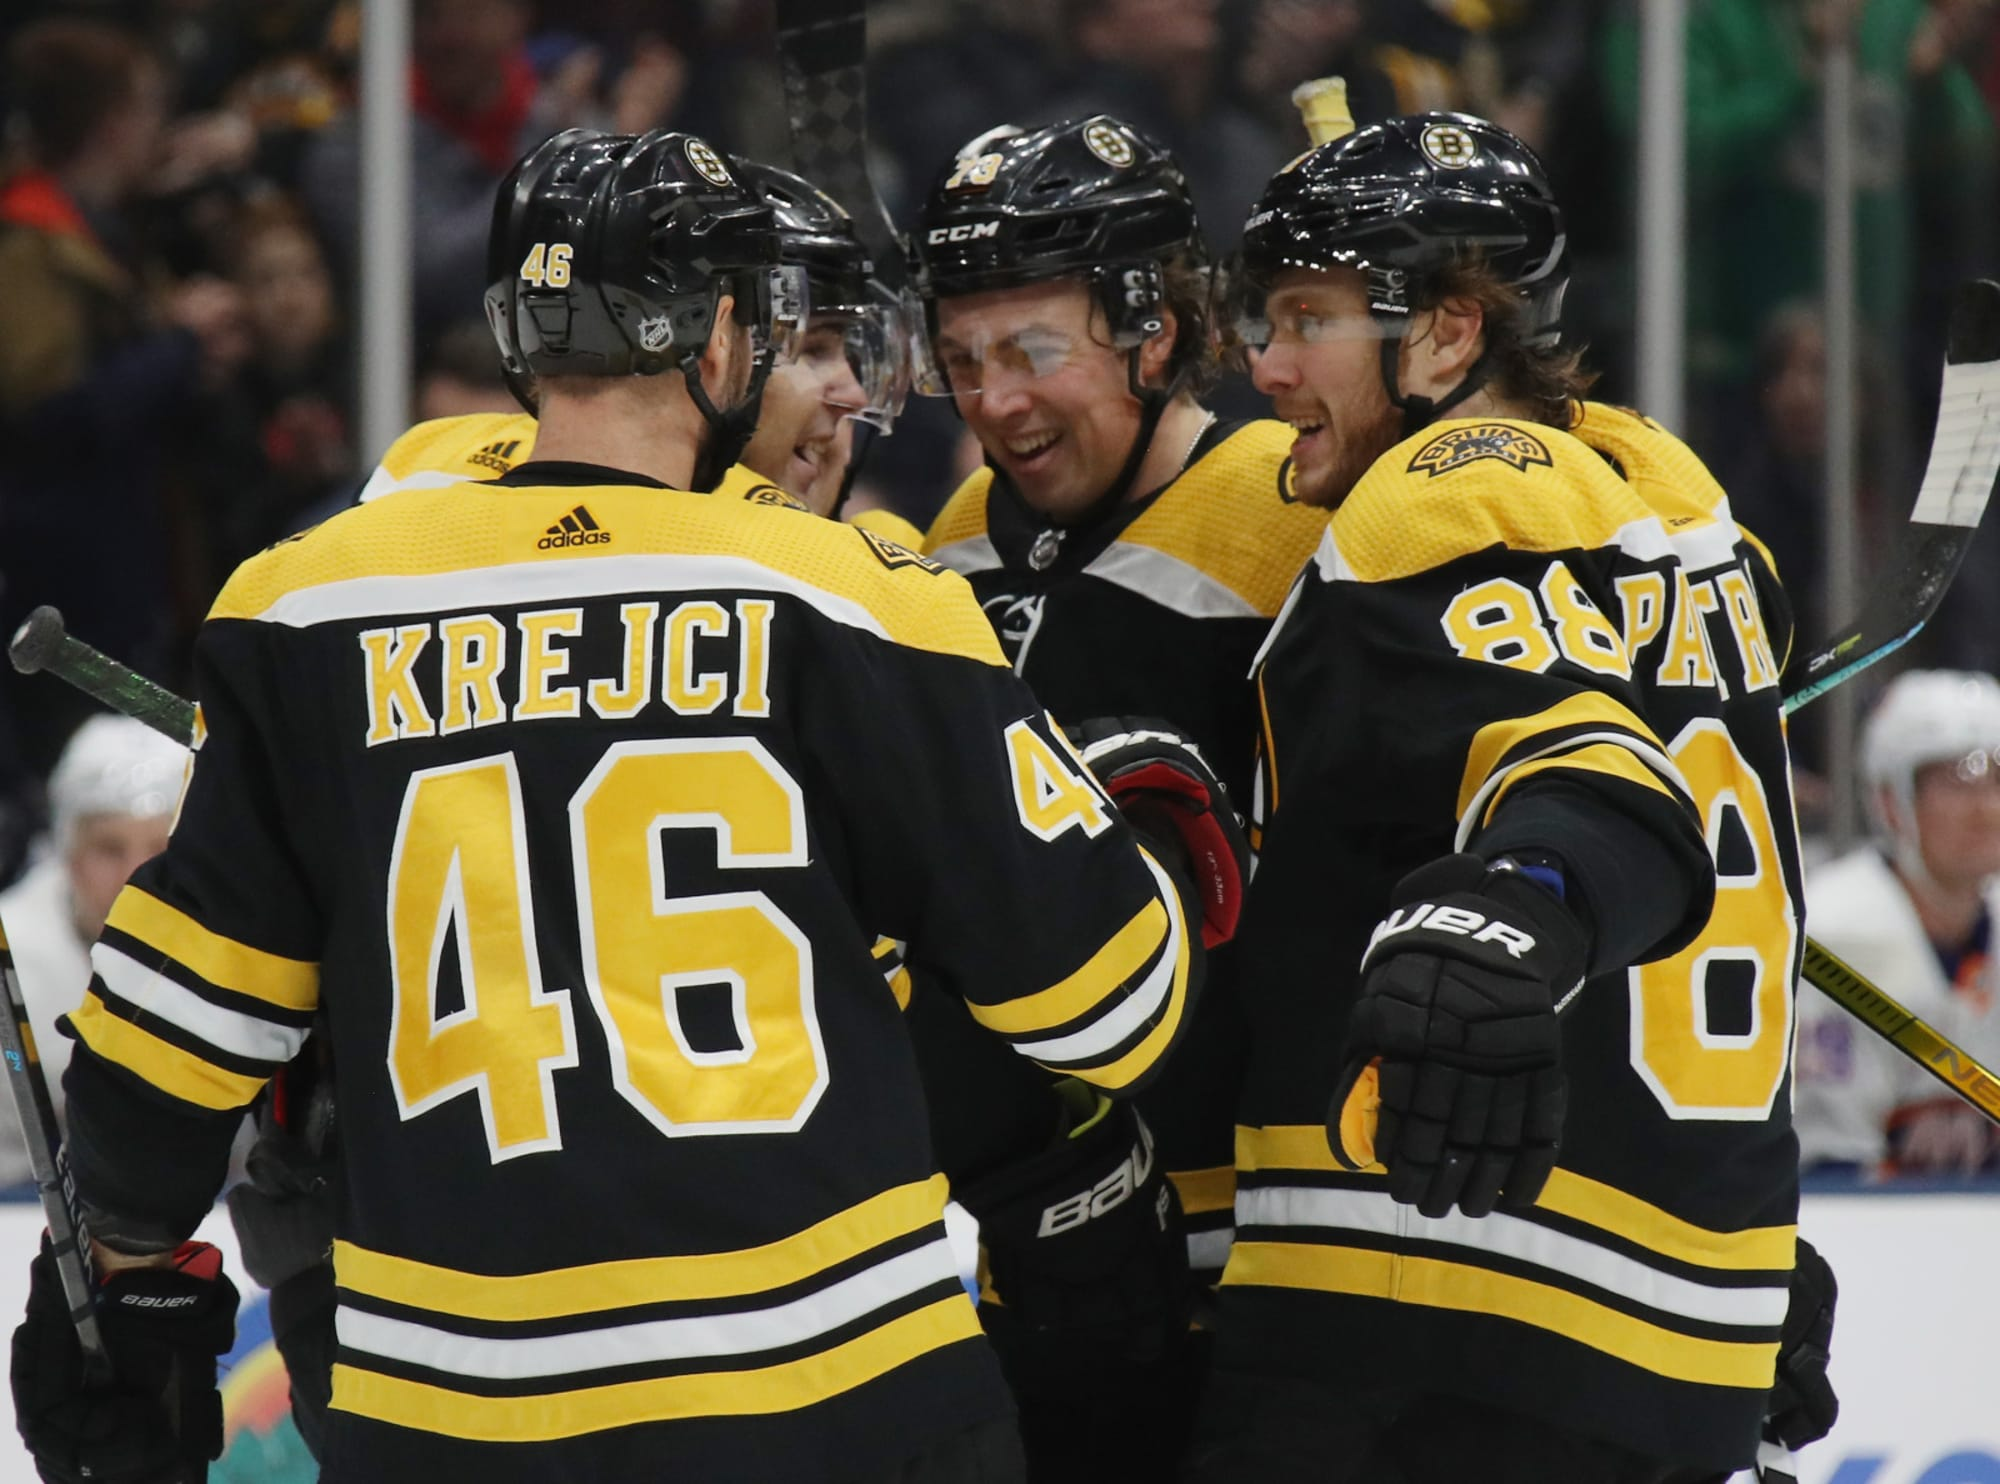 Boston Bruins: Officially the best team in the NHL this season Bruins Roster